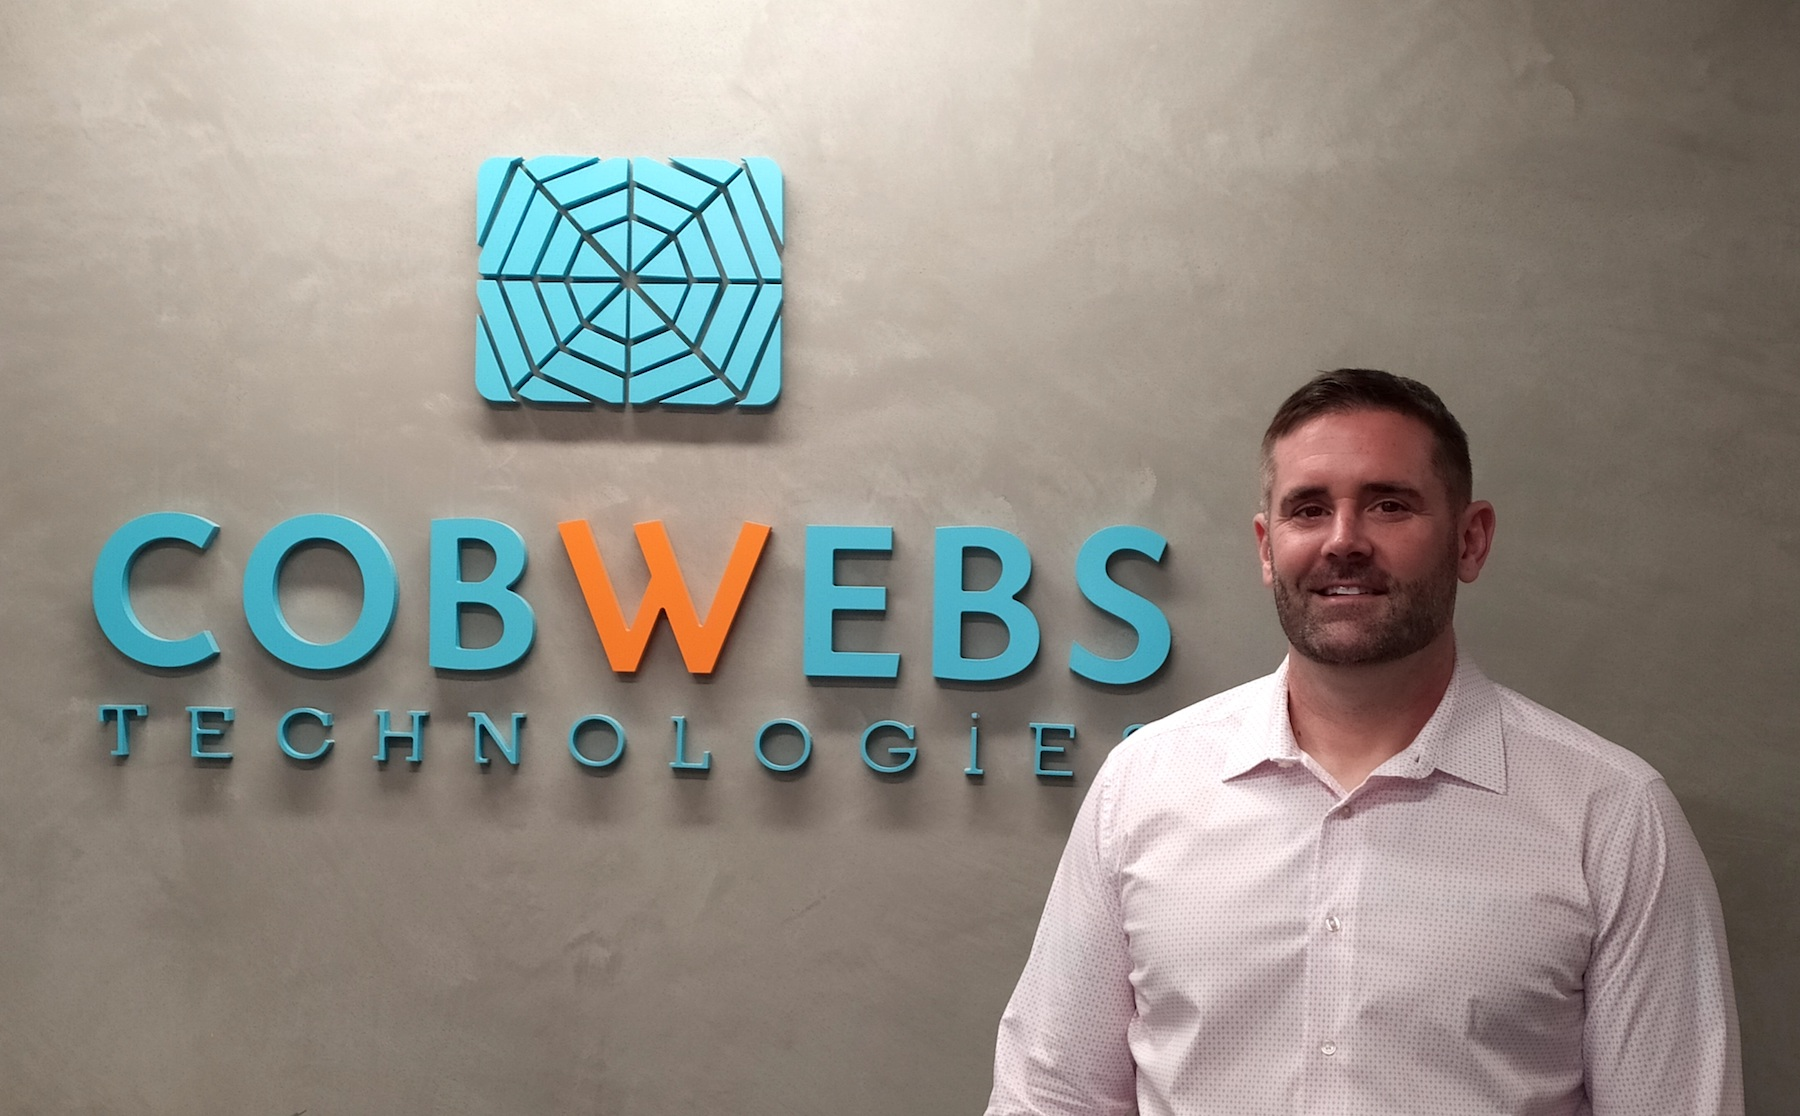 3johnmichael ohare sales and business development director at cobwebs technologies